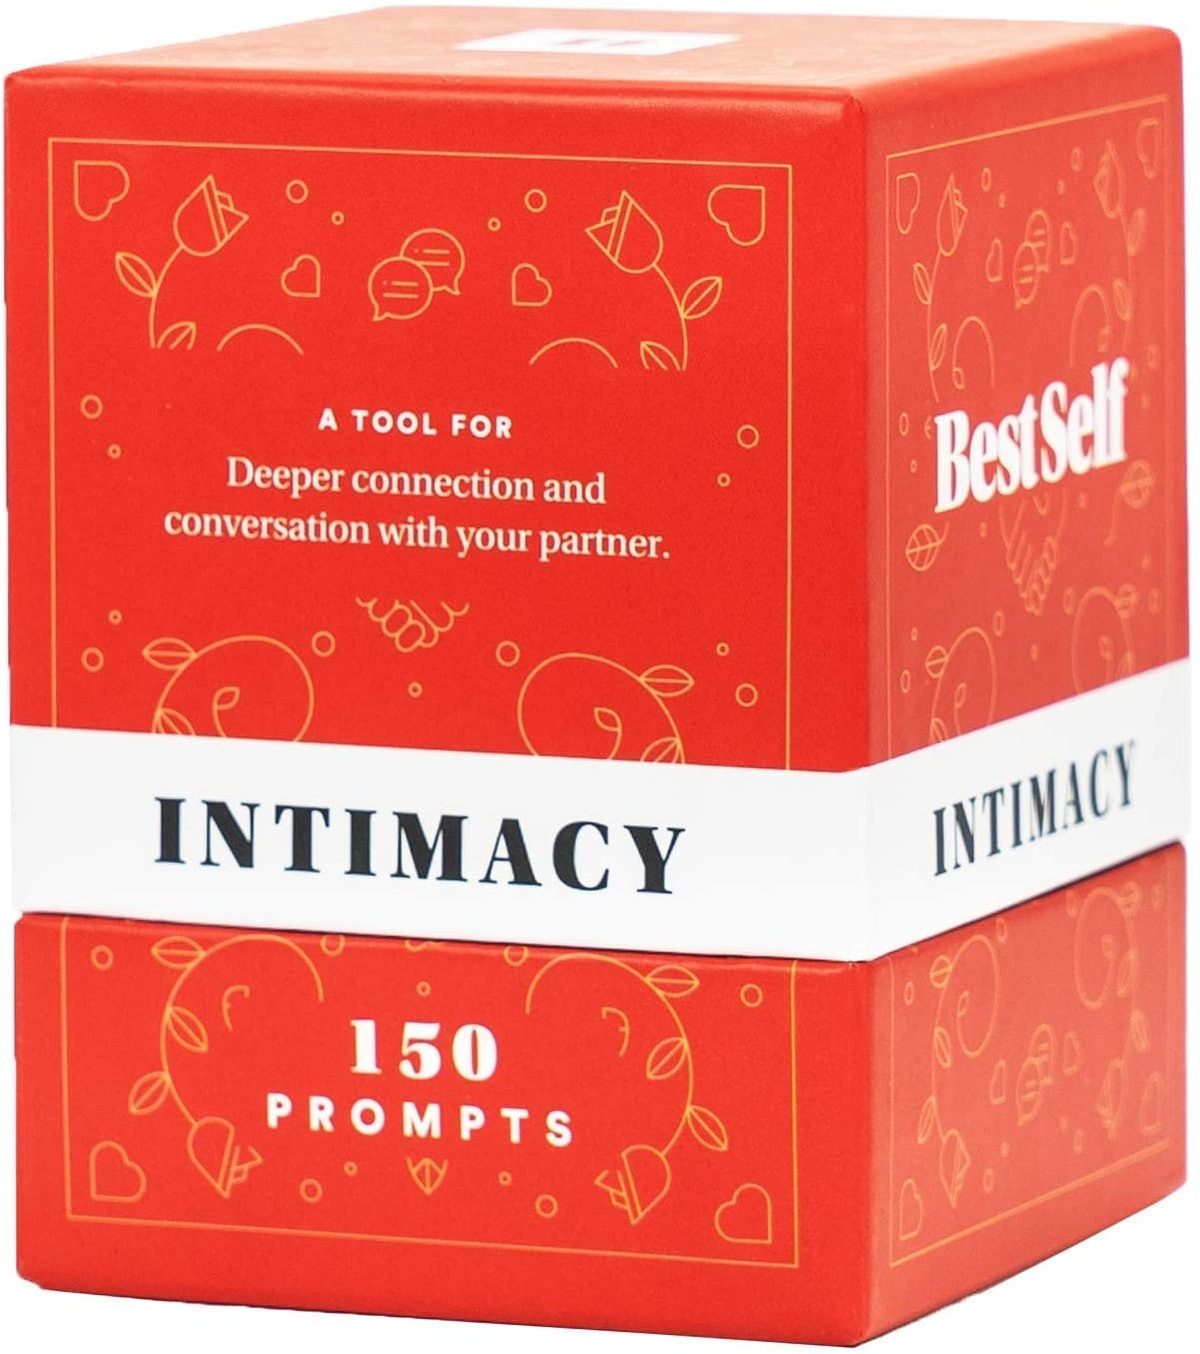 Intimacy Deck by BestSelf — 150 Engaging Conversation Starters for Couples to Strengthen Their Relat...